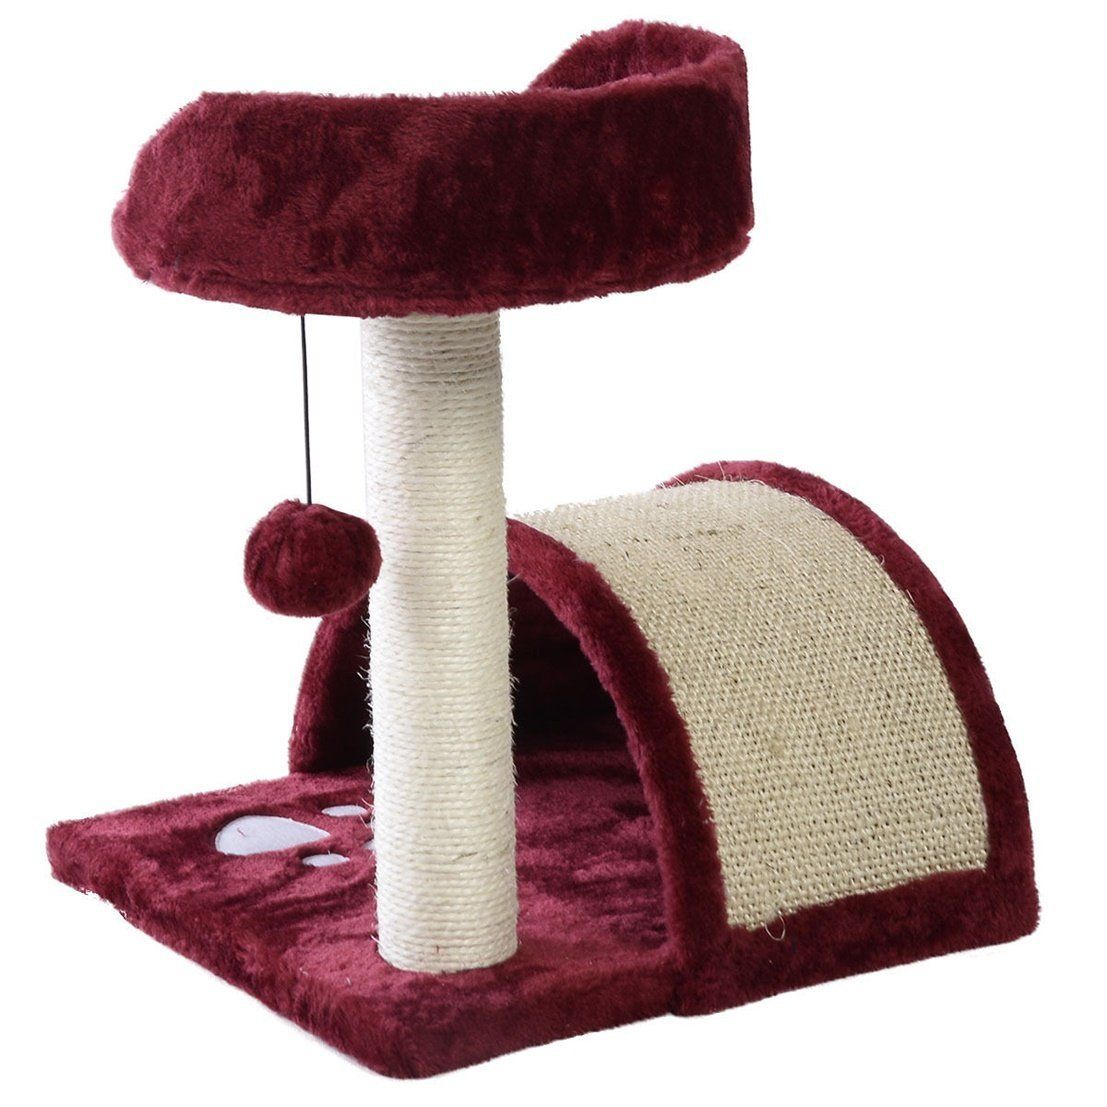 Optimal Popular 18 Cat Tree High Stability Kittens Pet Play Level Condo Color Wine Want Additional Info Click On The Image T Cat Tree Cat Activity Pets